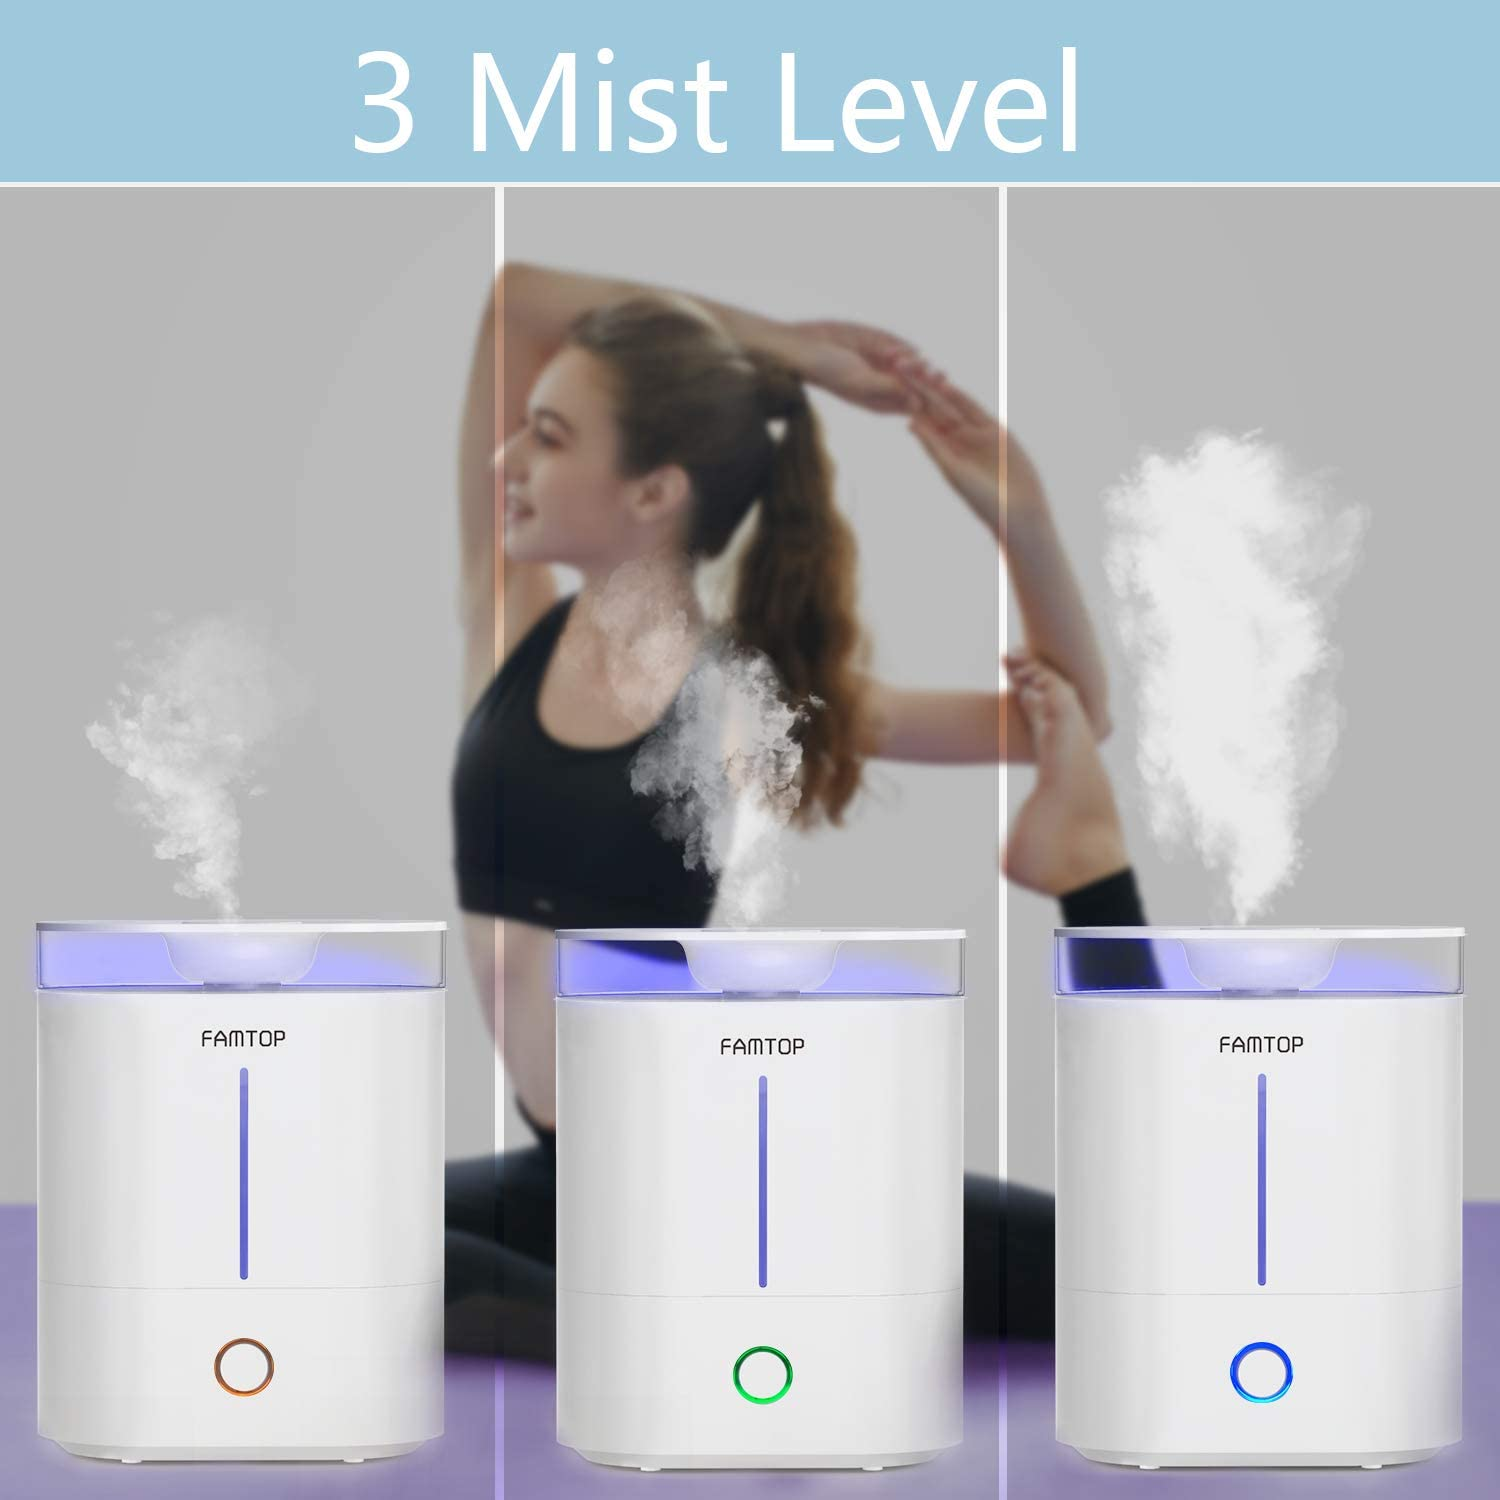 FAMTOP Ultrasonic Cool Mist Humidifiers 4L, Top Fill Air Humidifier Diffusers with Light, Whisper Quiet & 360°Nozzle, Up to 40 Hours, Auto Shut Off